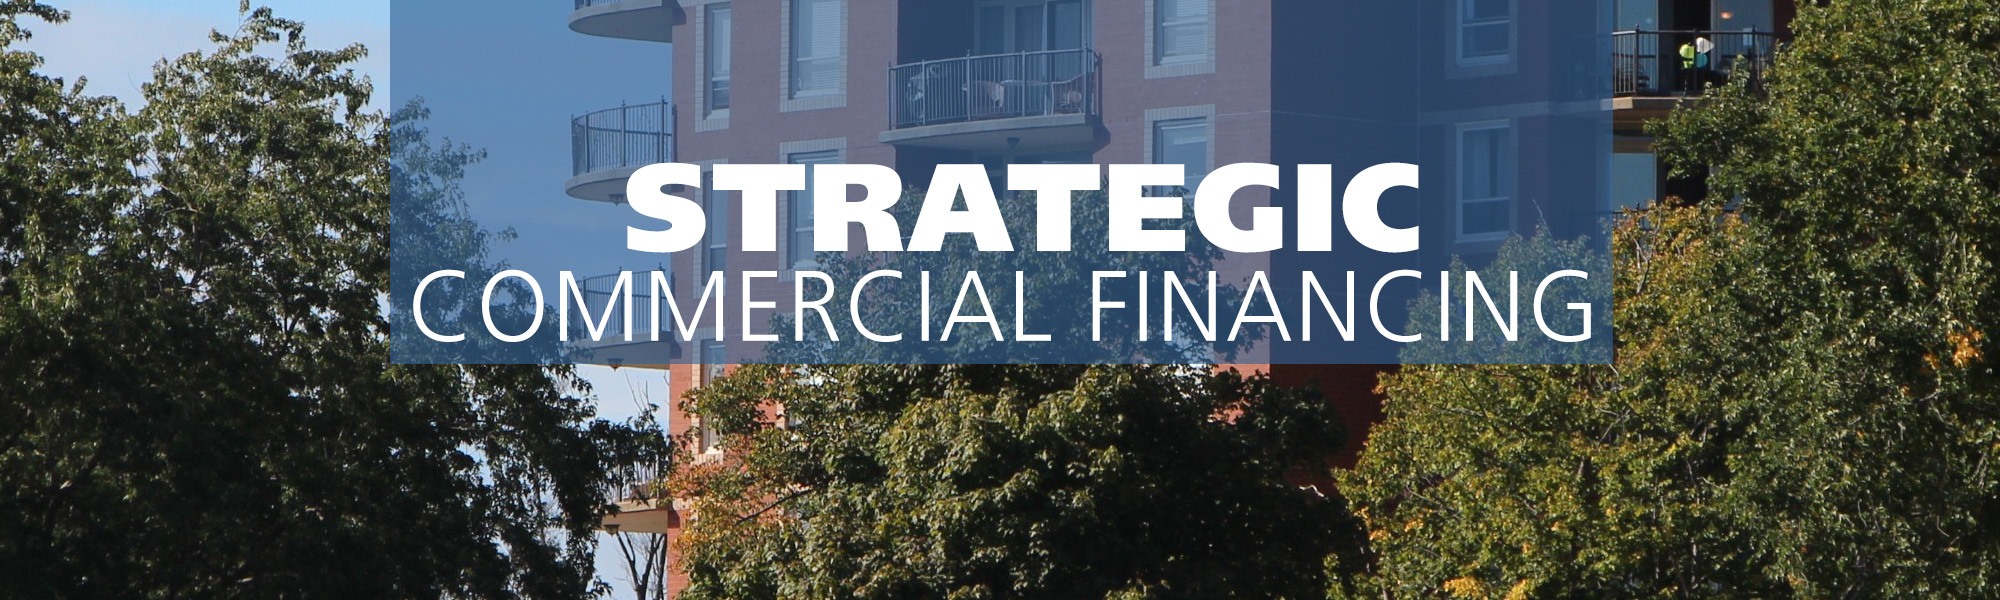 Strategic Commercial Financing